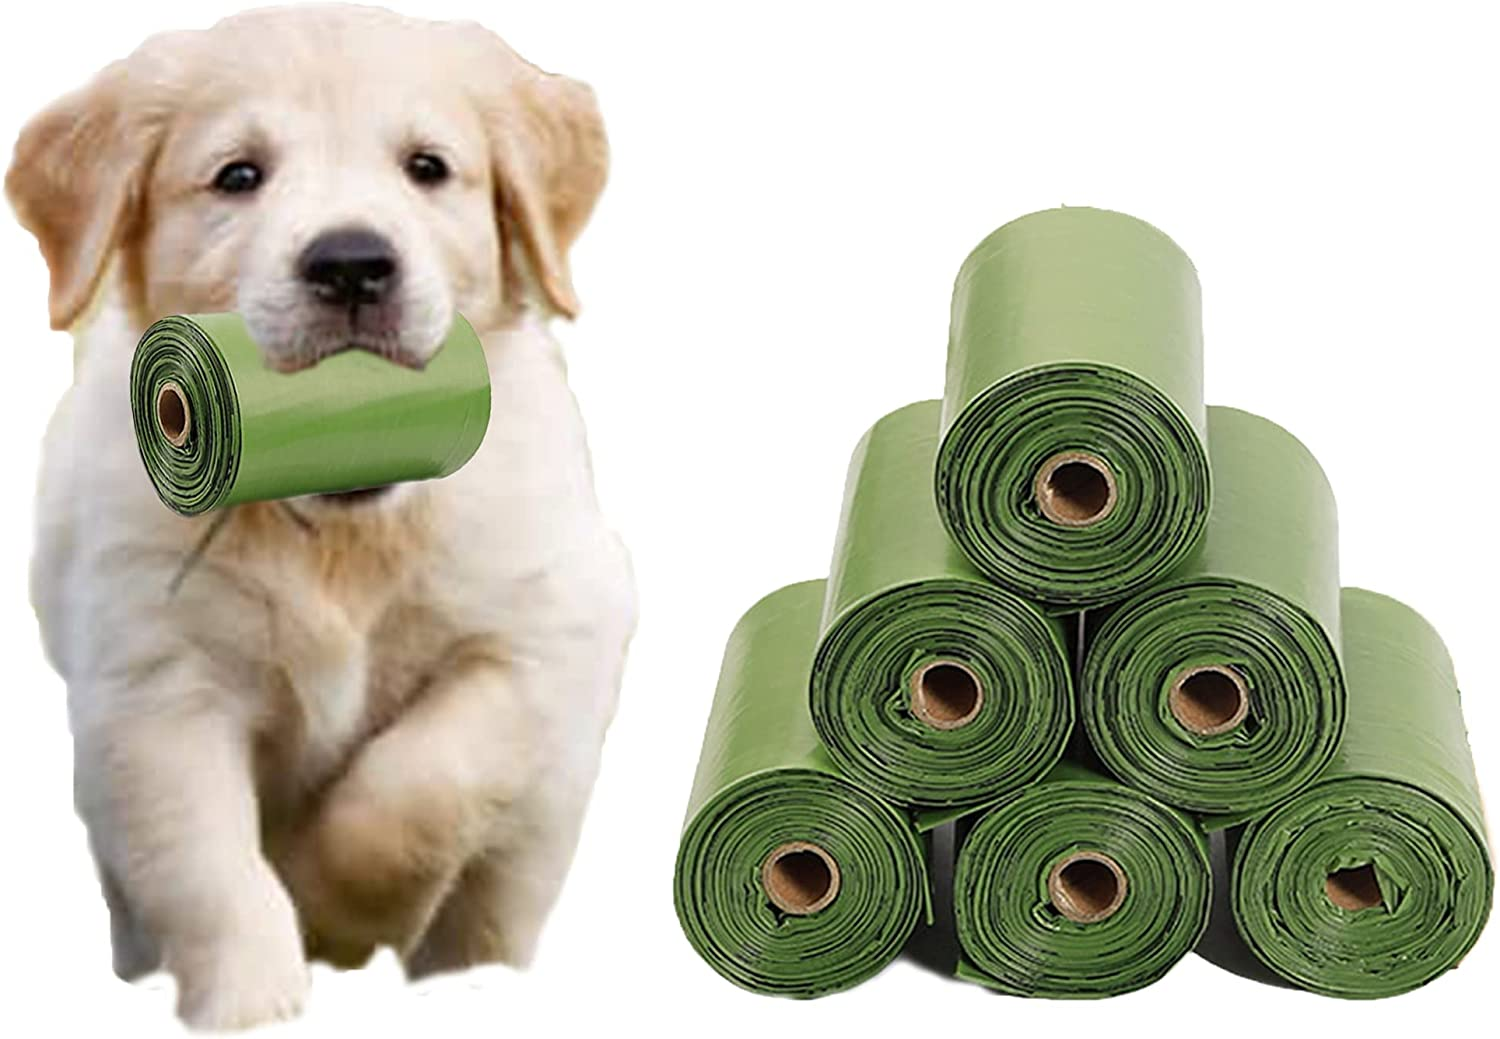 PETAGON pet poop bags, Dog Necessities, unscented biodegradable dog waste bags, durable and environmental-friendly, fitting all types of dispensers